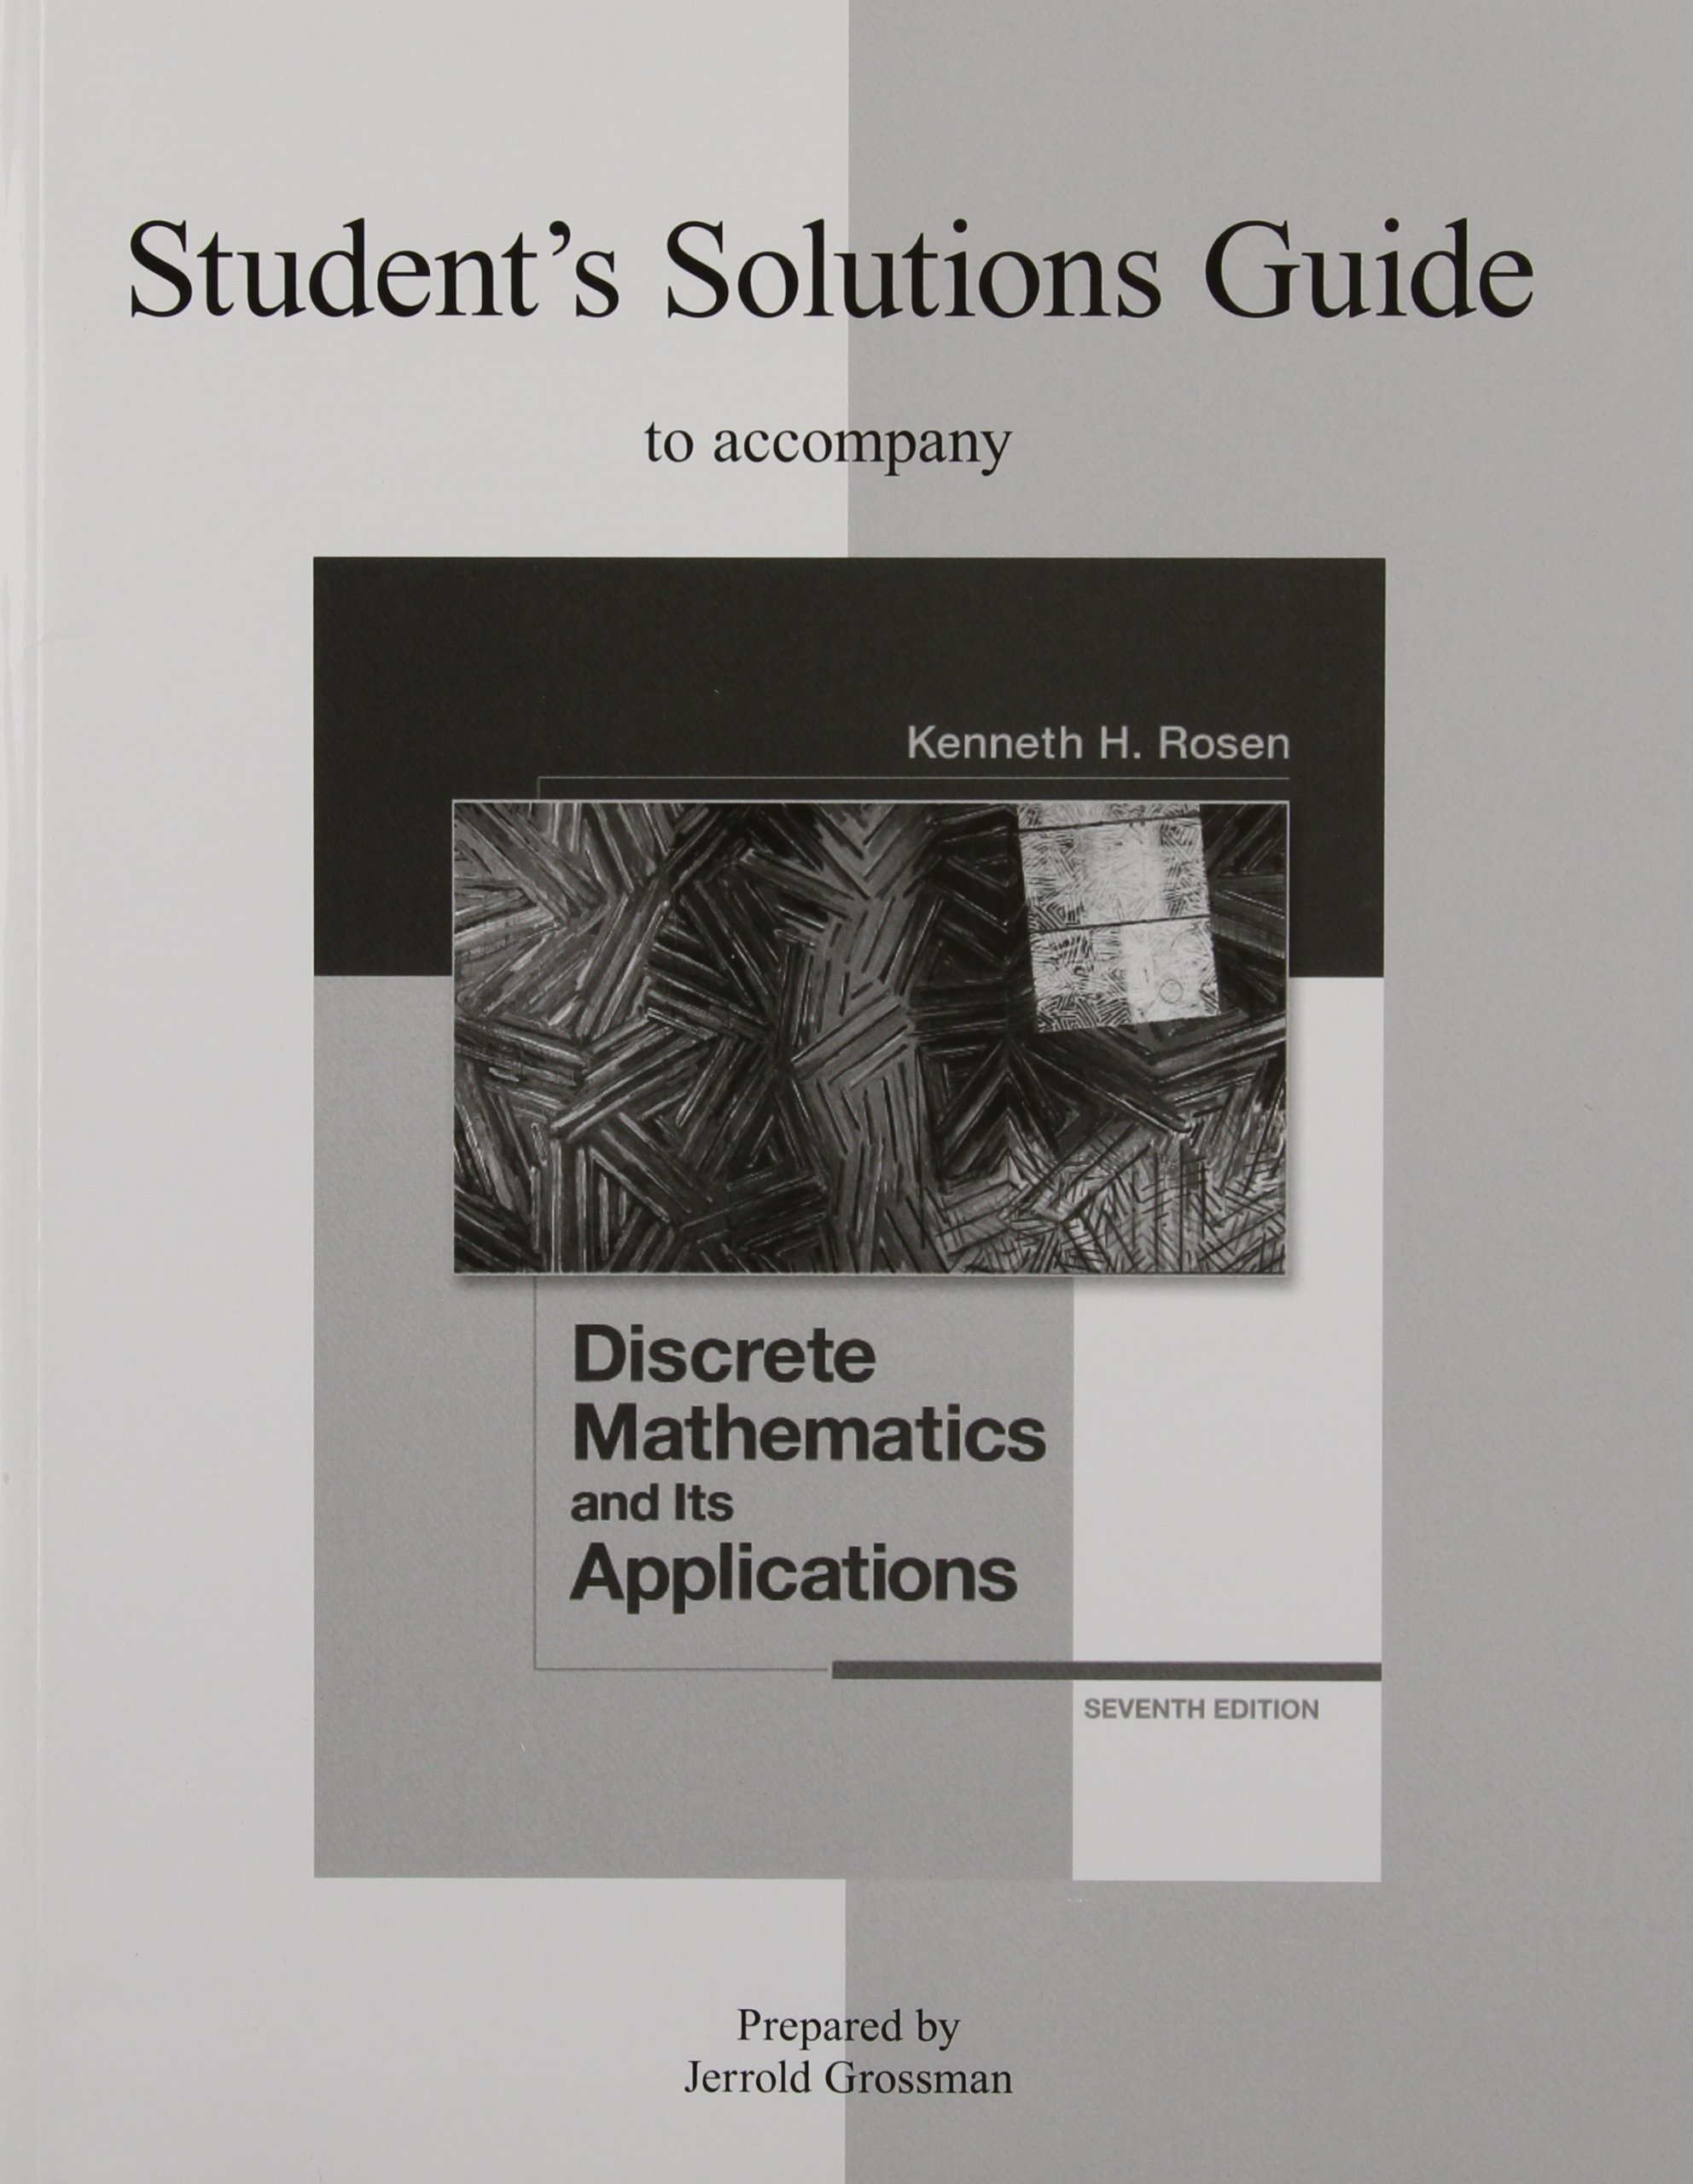 Student's Solutions Guide for Discrete Mathematics and Its Applications:  Kenneth H Rosen, Jerrold W. Grossman Professor: 9780077353506: Books -  Amazon.ca